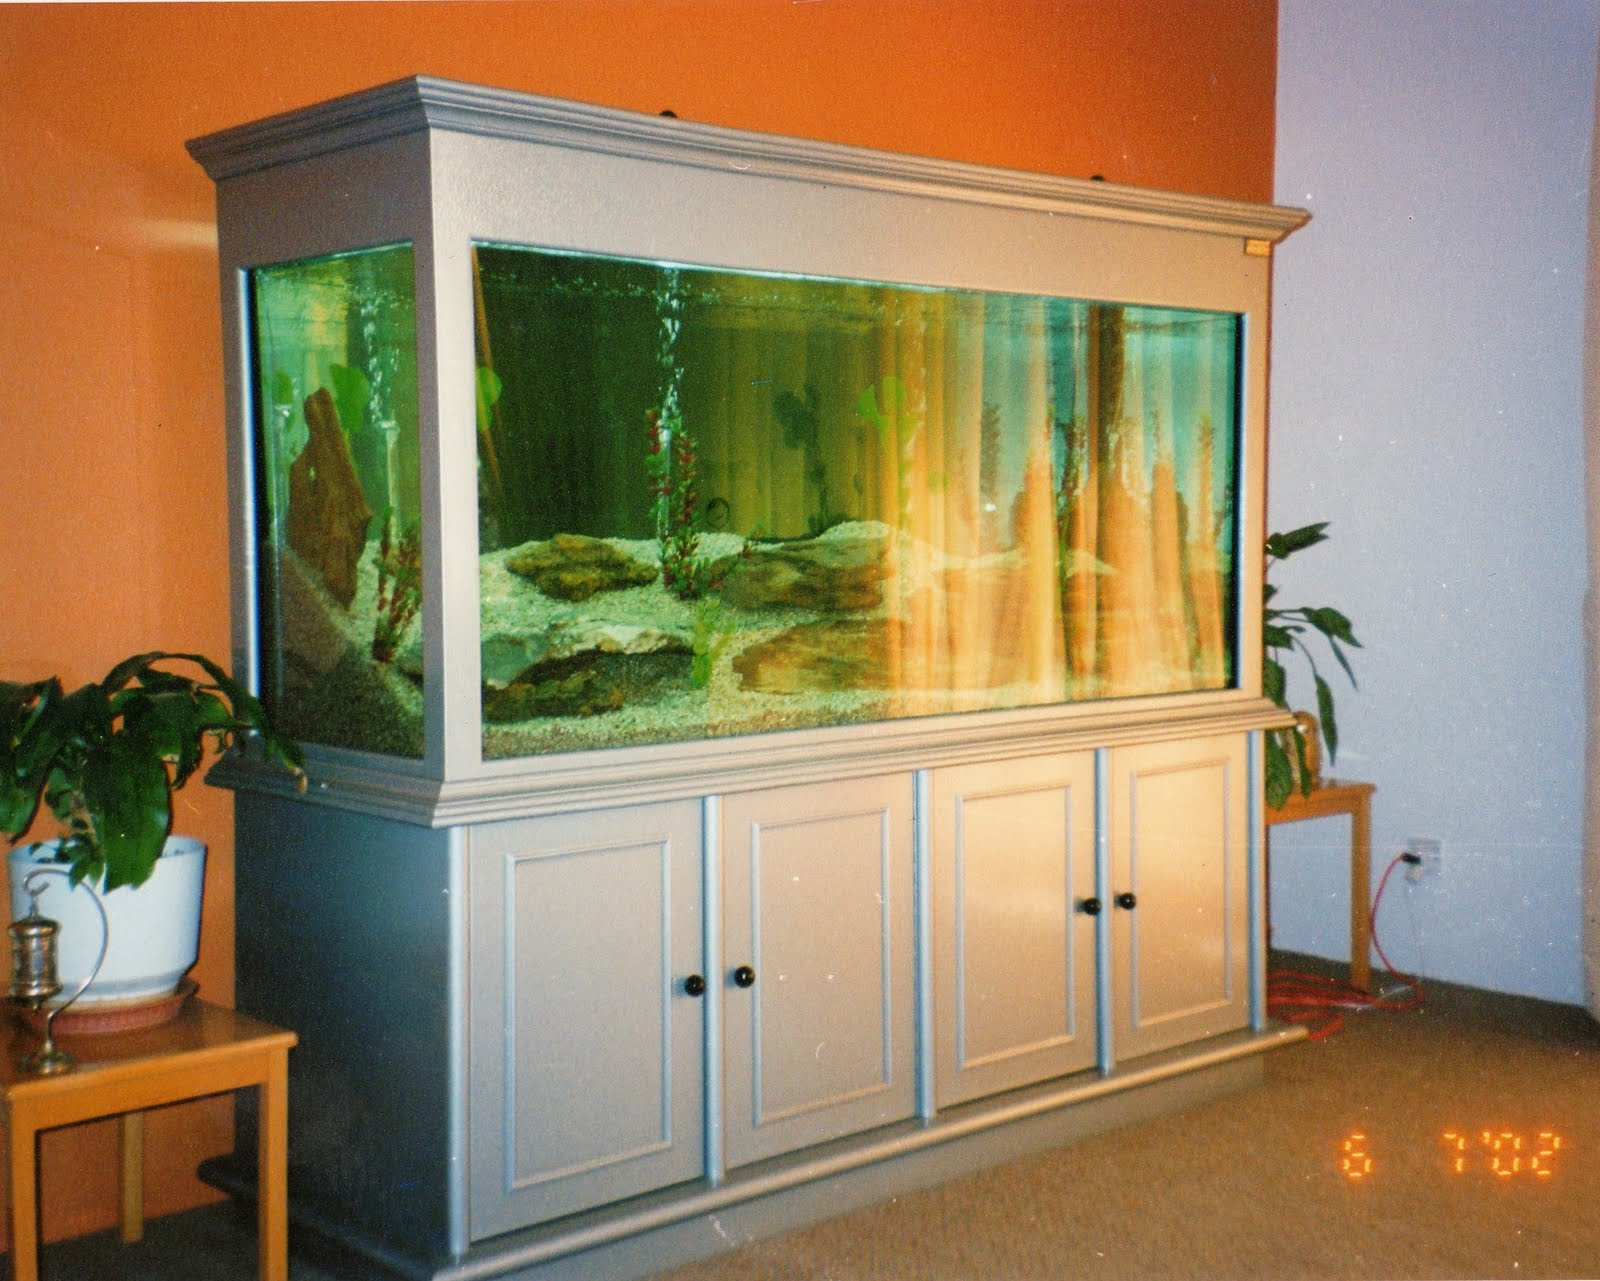 Fish aquarium karachi - Rectangle Shape Aquariums